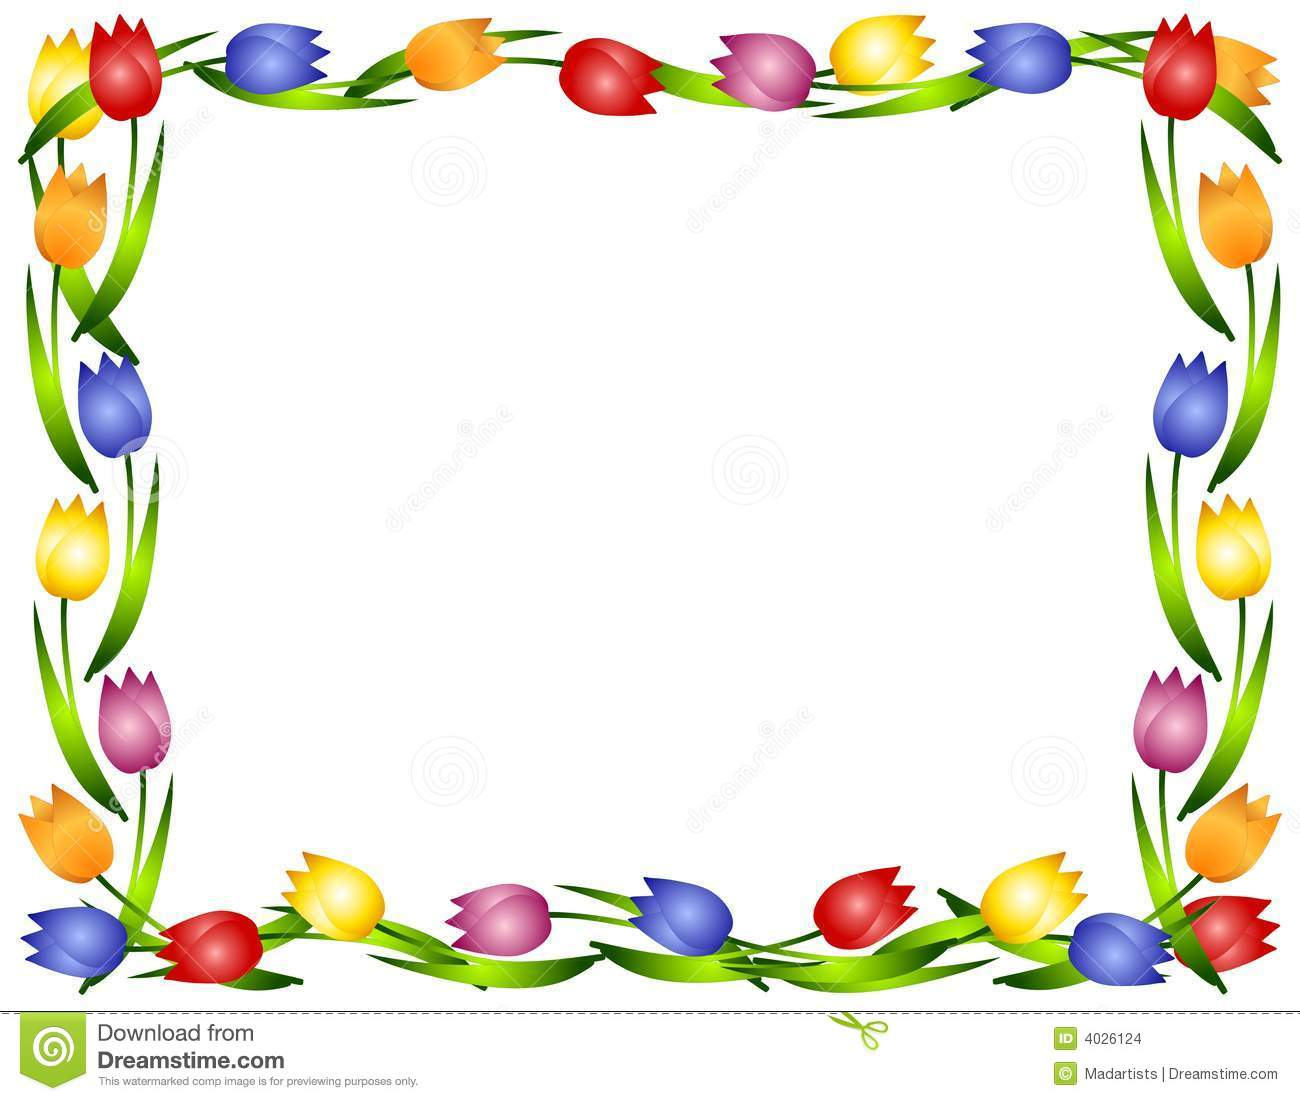 Free flowers borders download. Border clipart spring